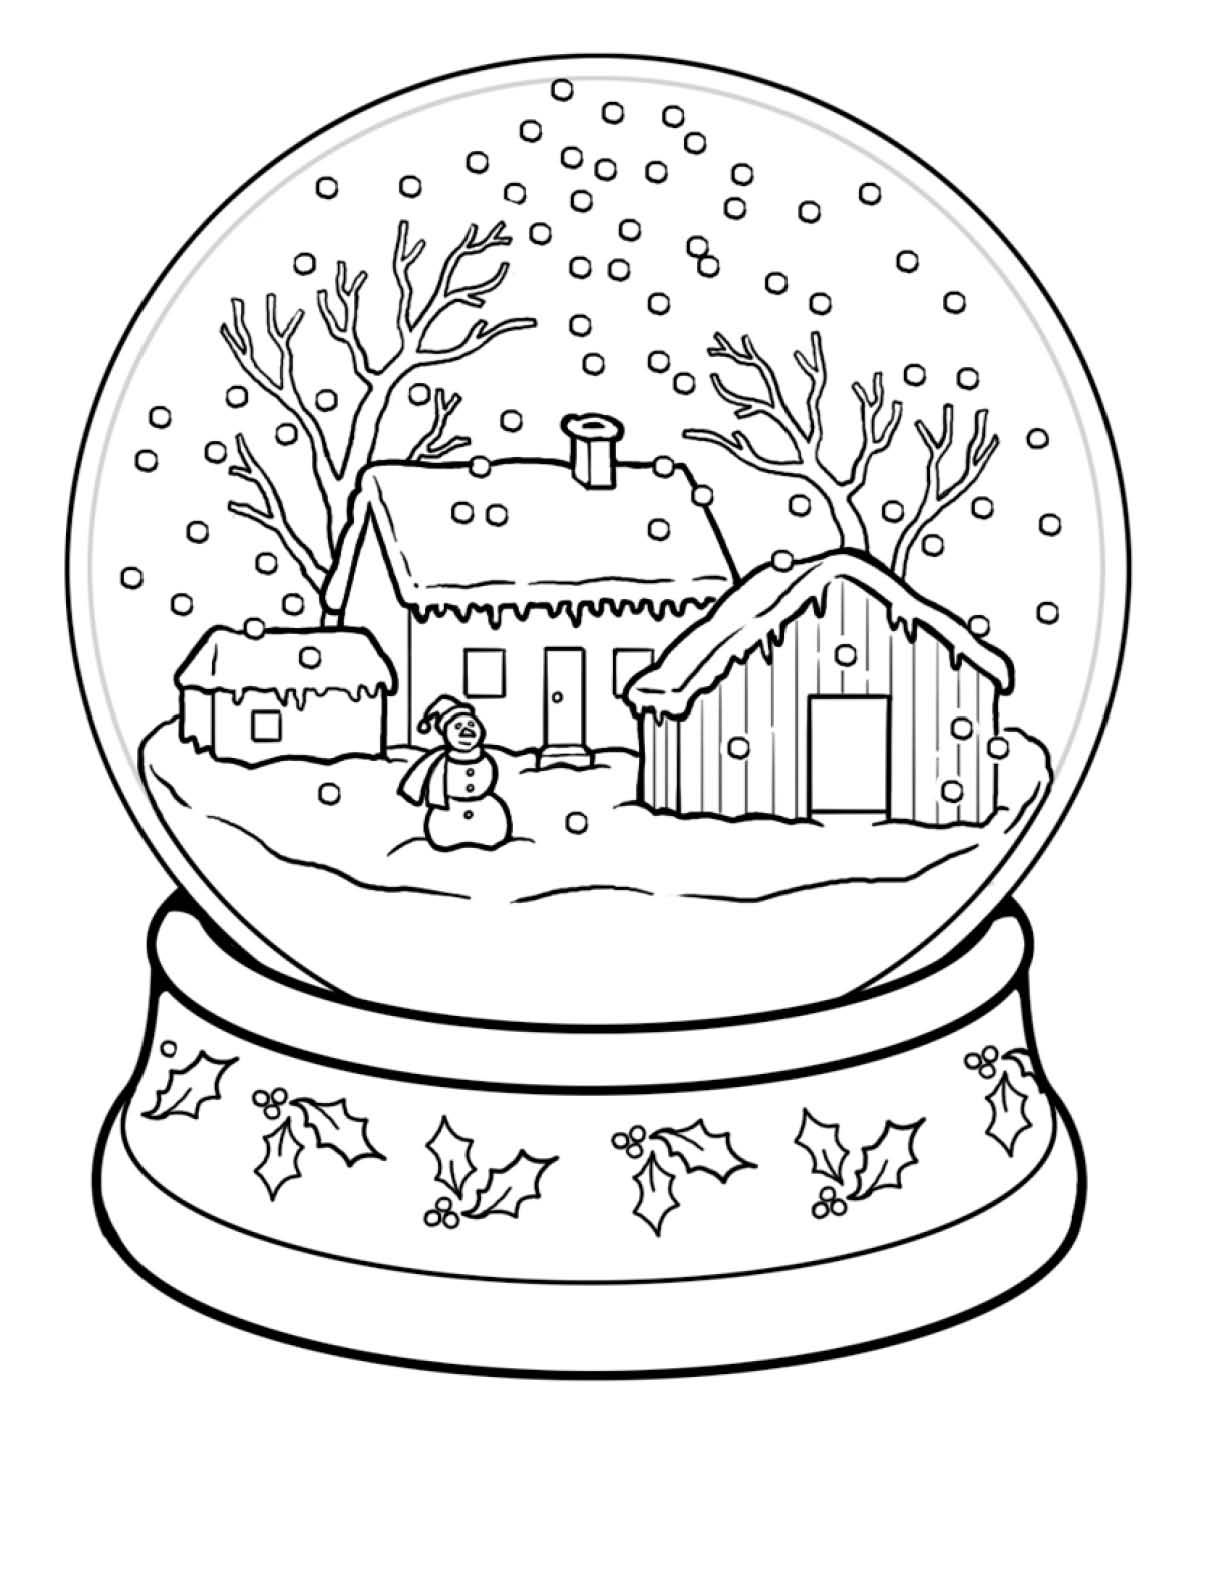 Winter Scenes Coloring Pages Printable Winter